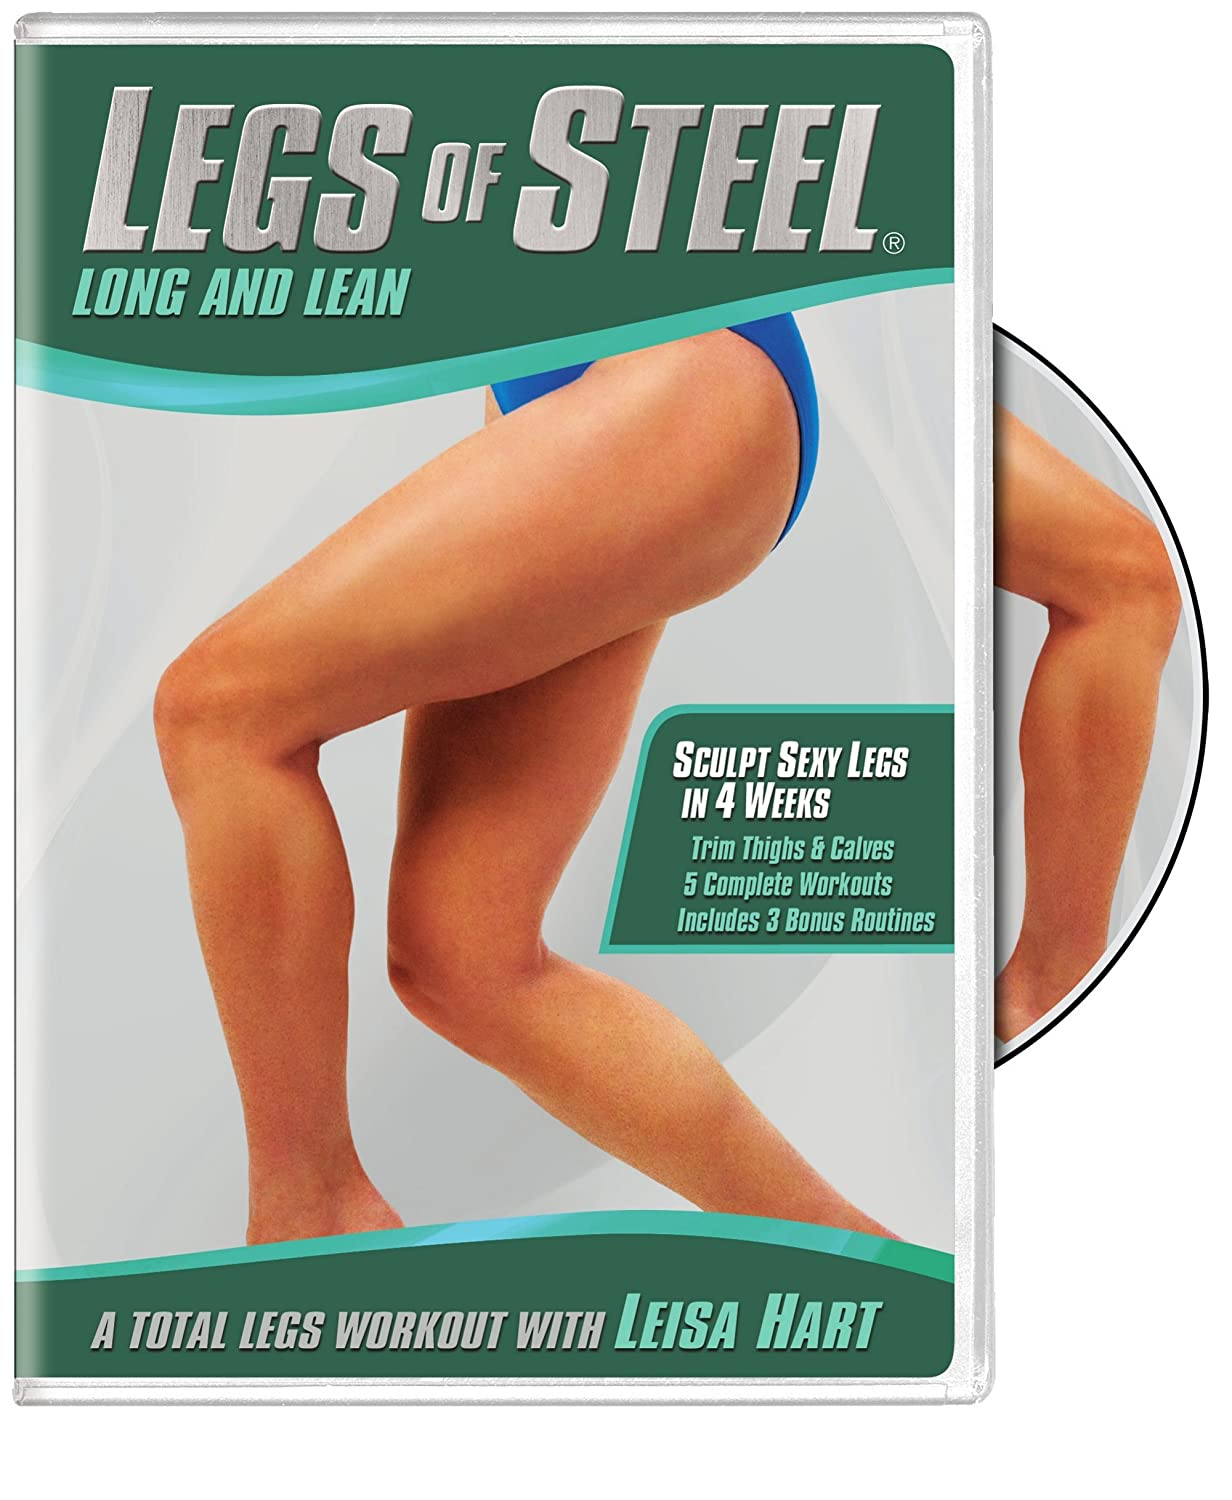 Legs of Steel: Long and Lean Leisa Hart Warner Bros. Home Video 5072309 Fitness/Self-Help